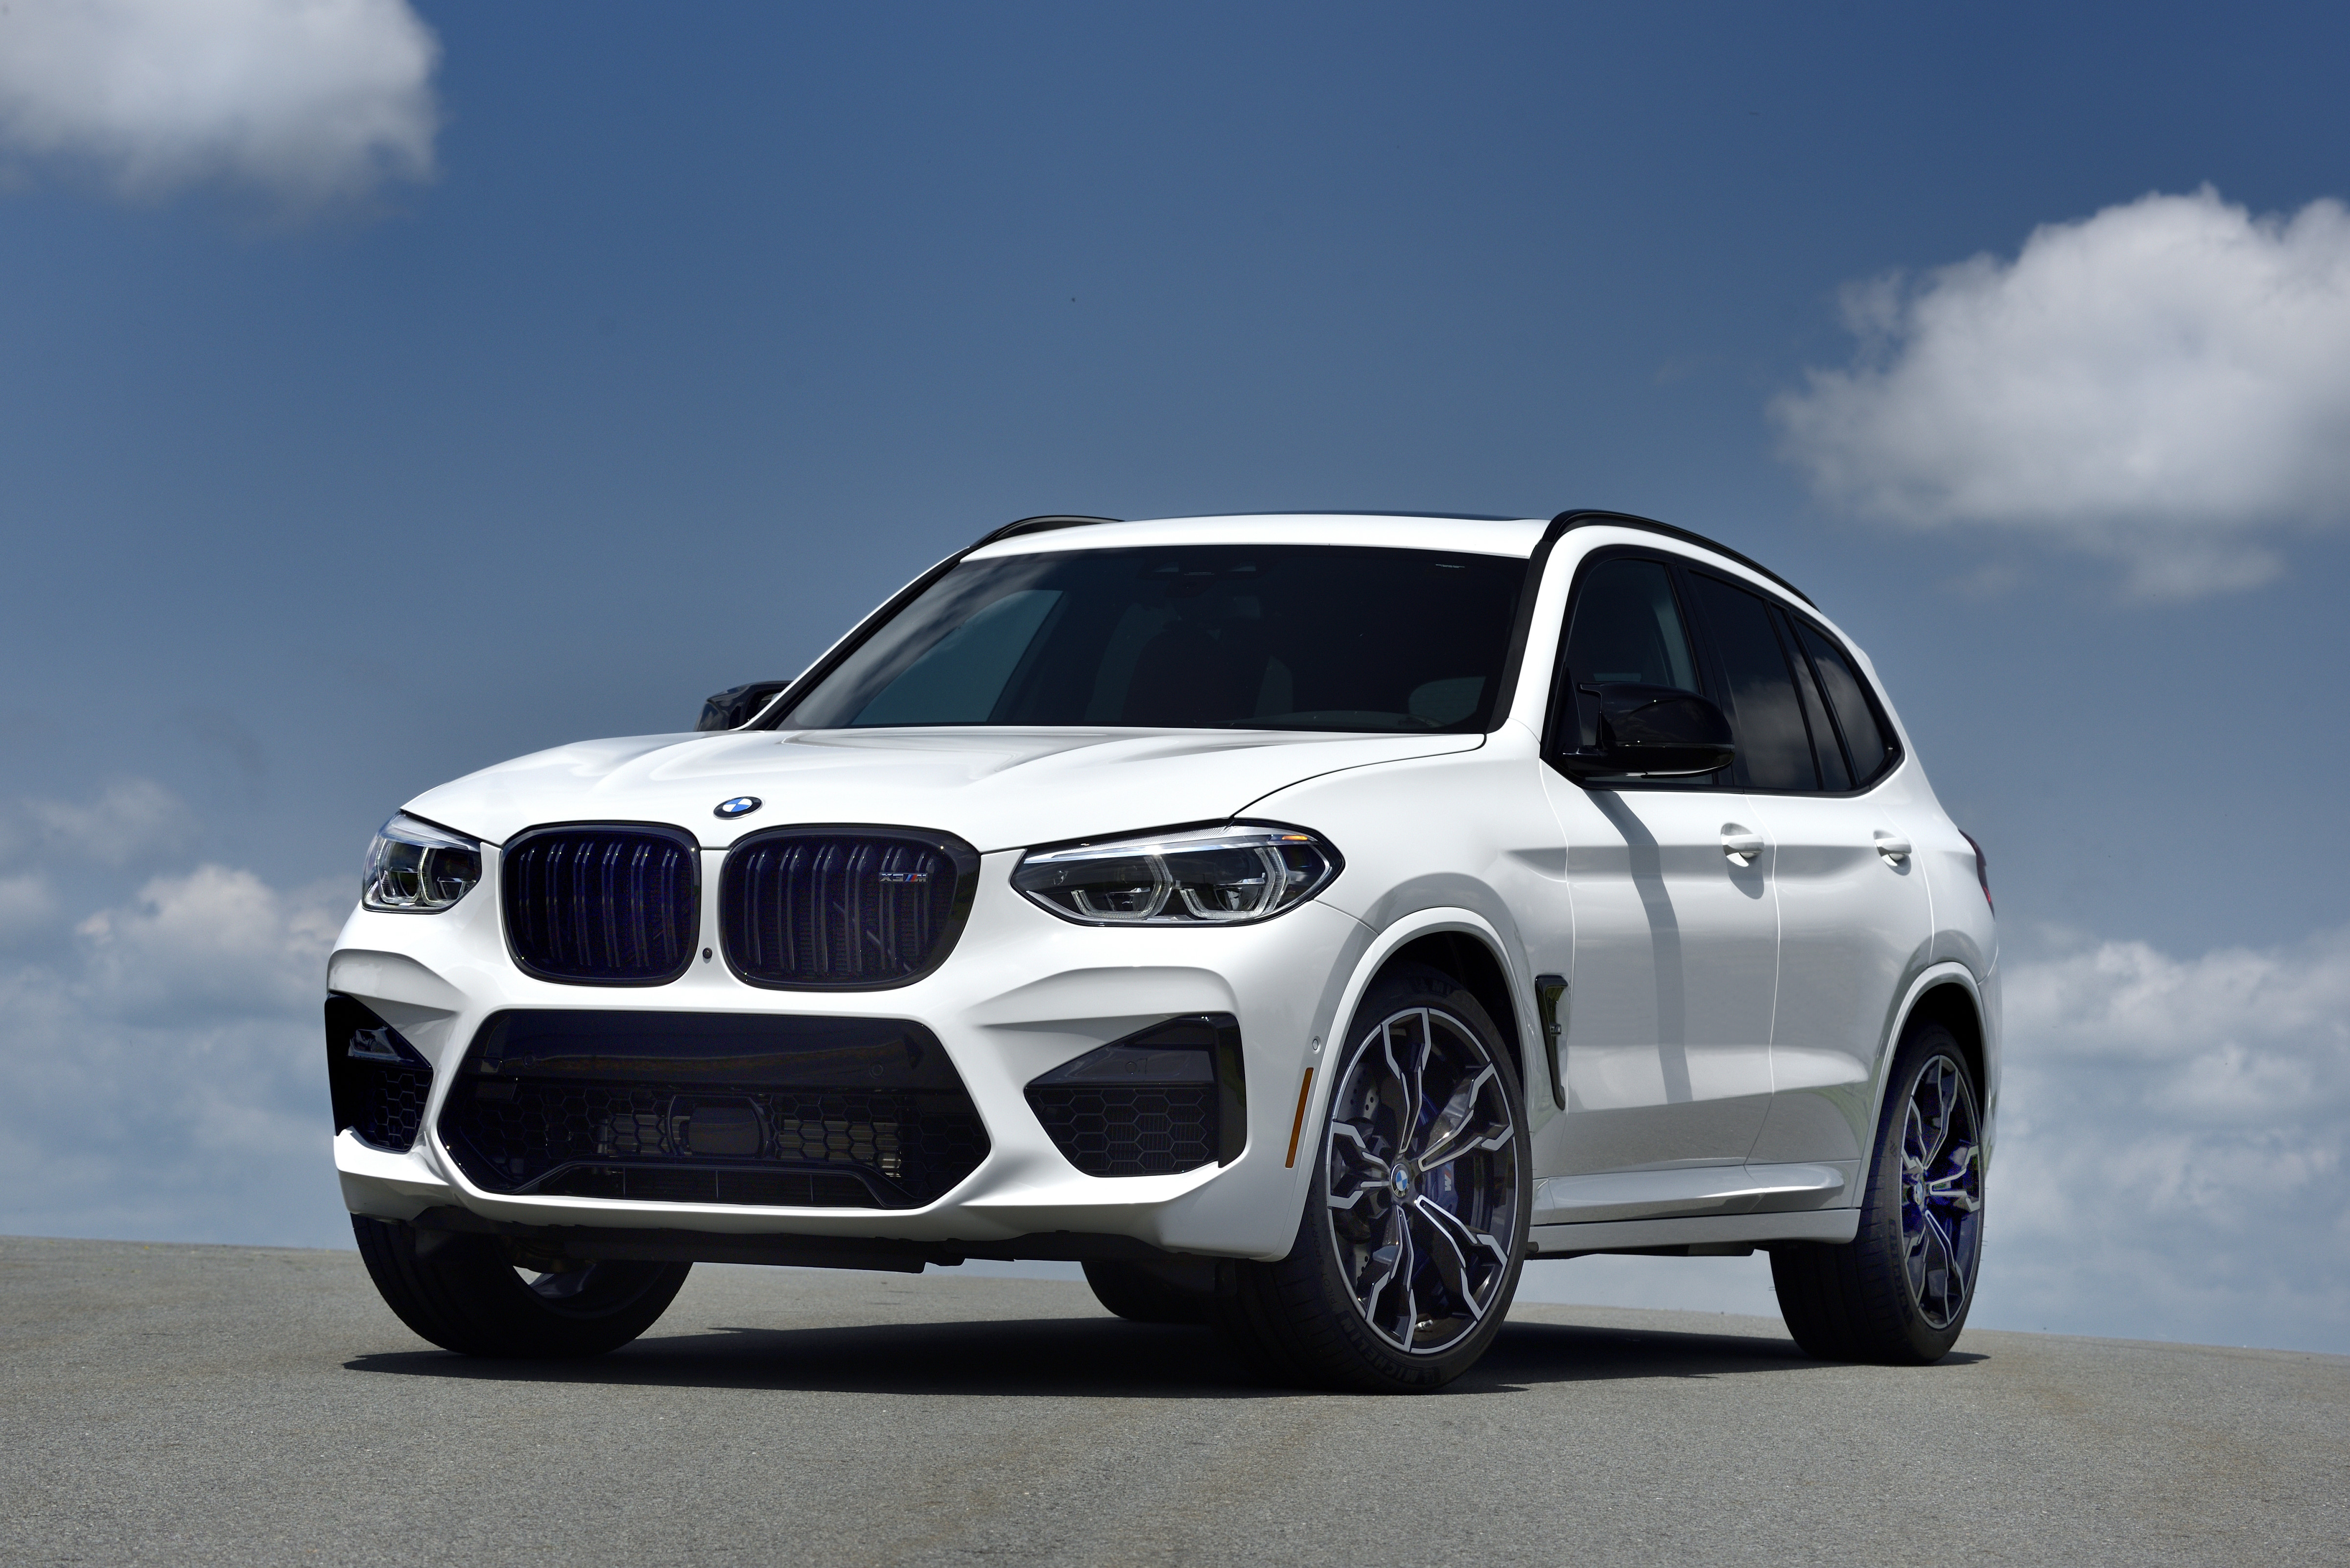 BMW X3M launched in India at 99.99 lakhs